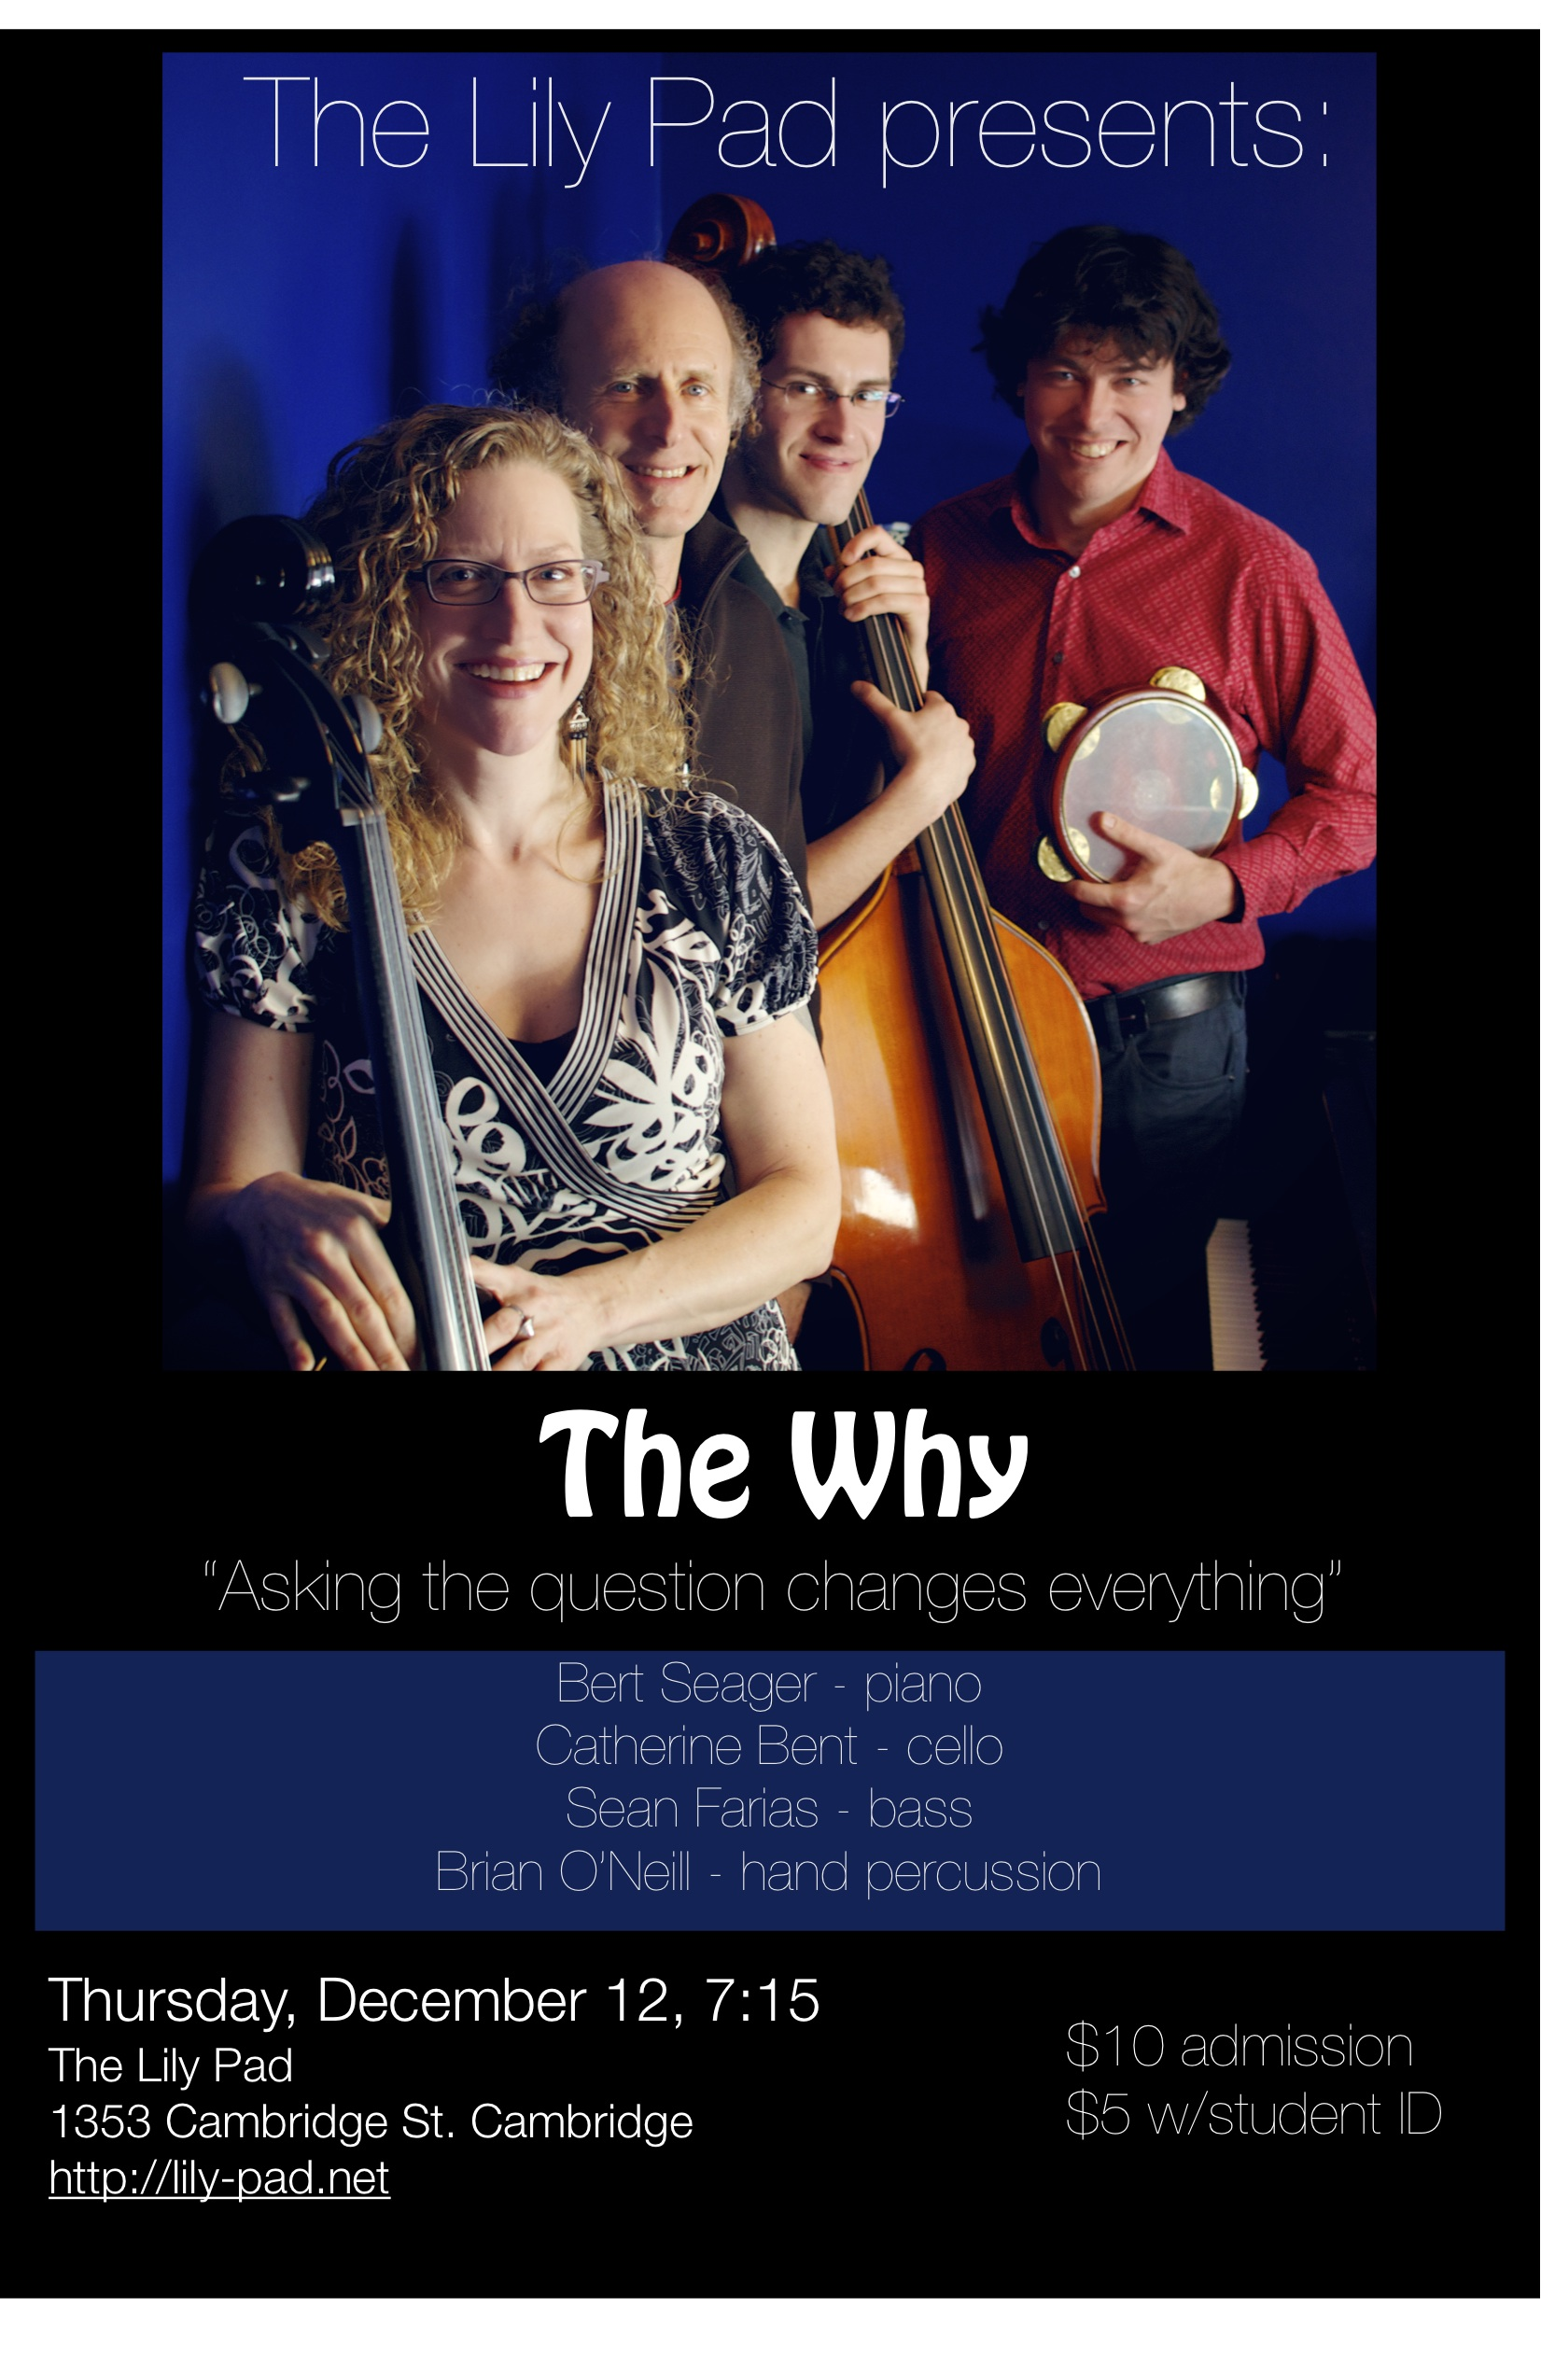 http://lilypadinman.files.wordpress.com/2013/11/the-why-poster-december-2013.jpg